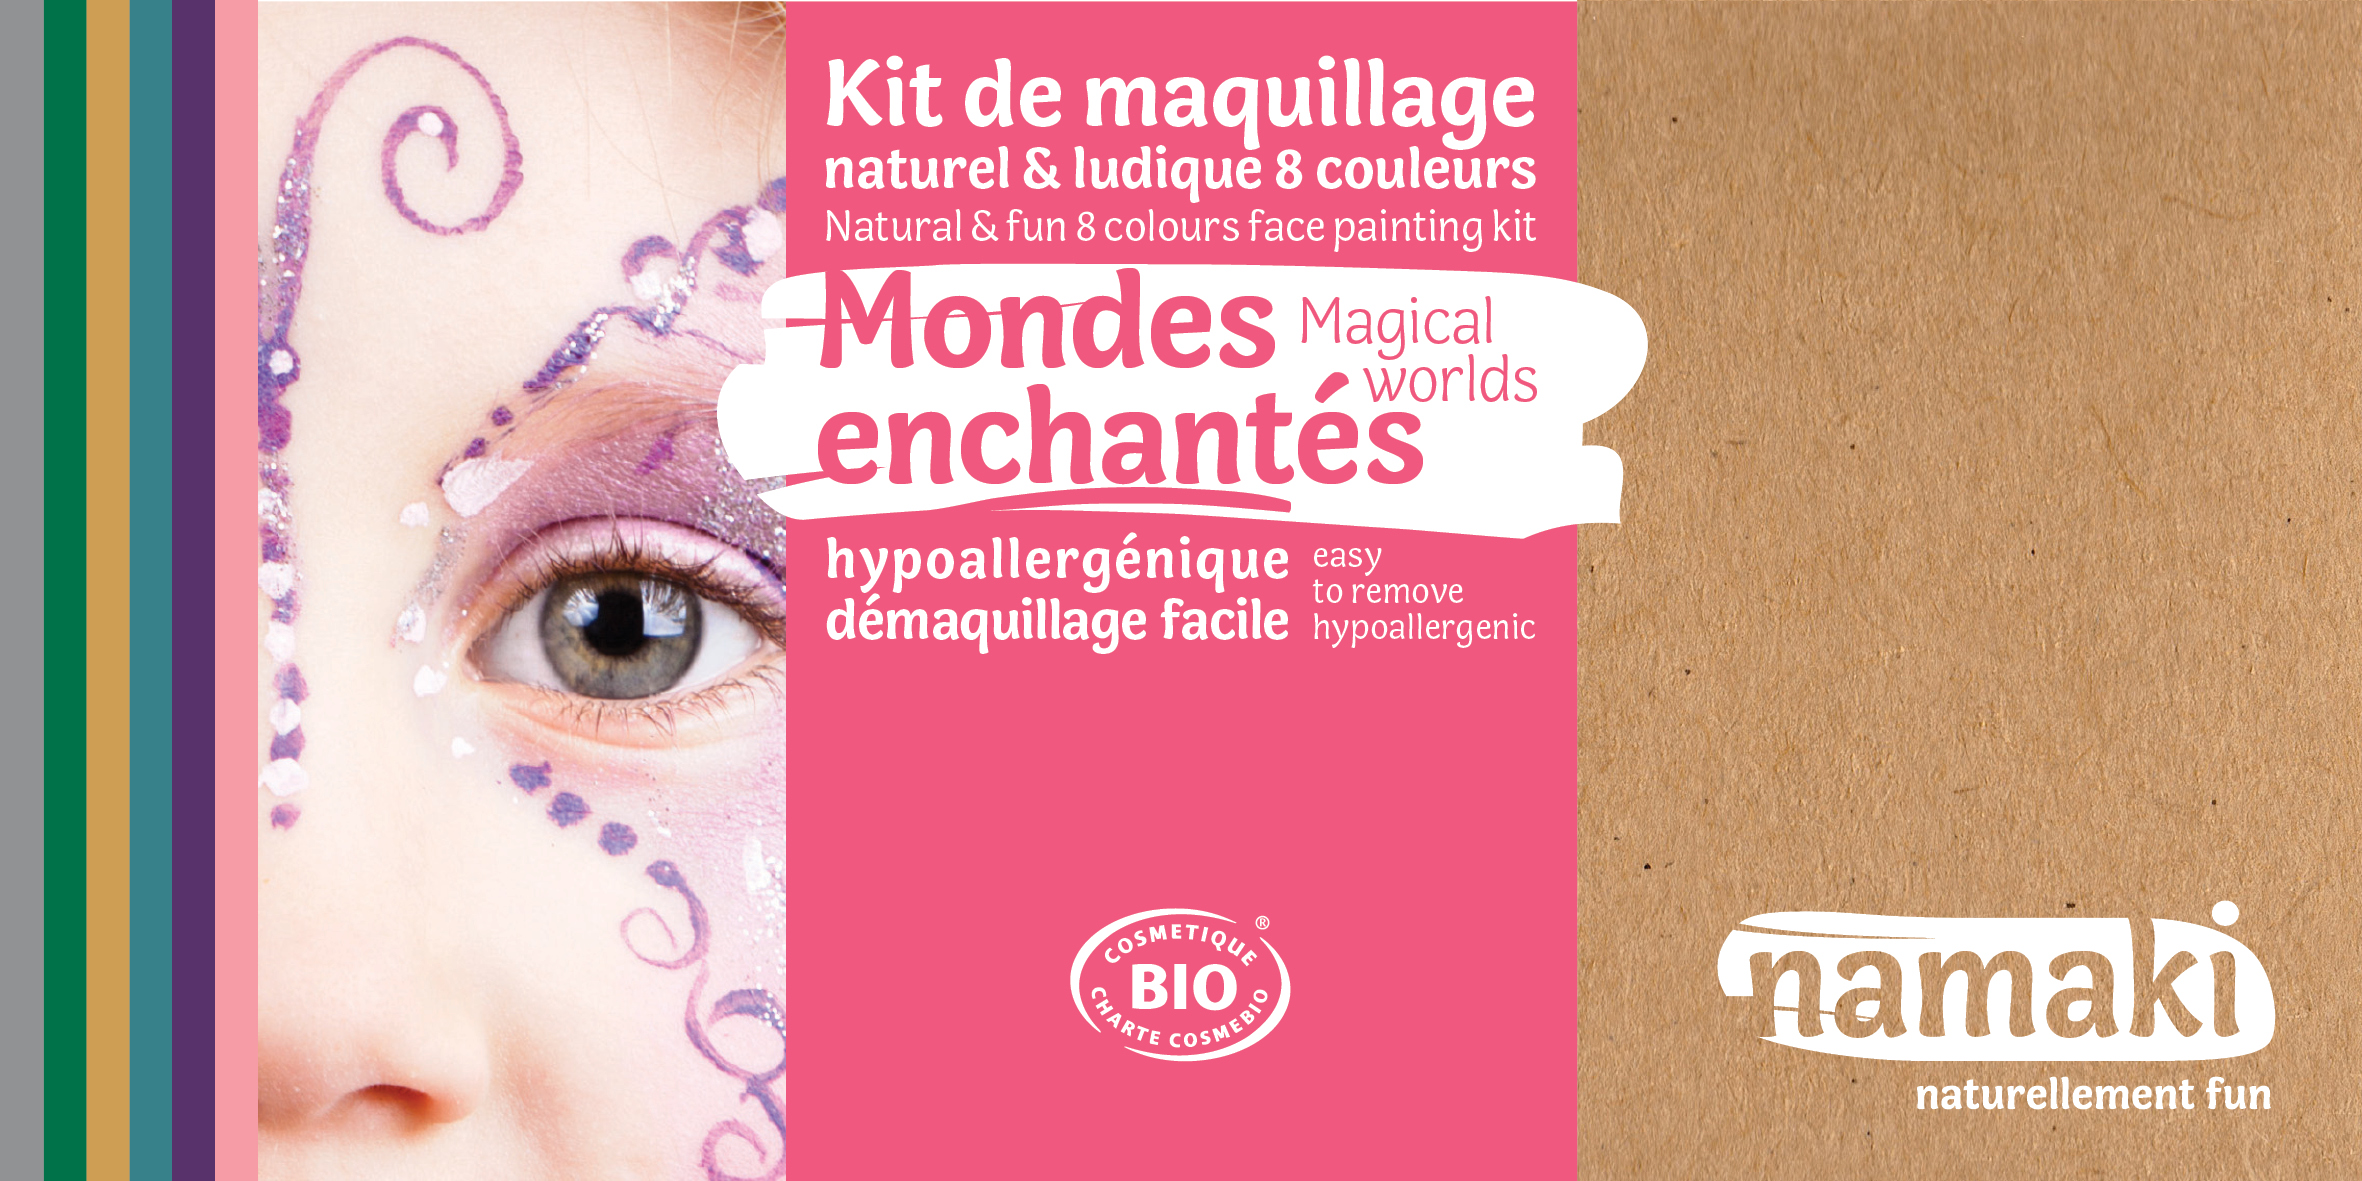 Doux Good - Namaki - kit de maquillage bio 8 couleurs Mondes enchantes